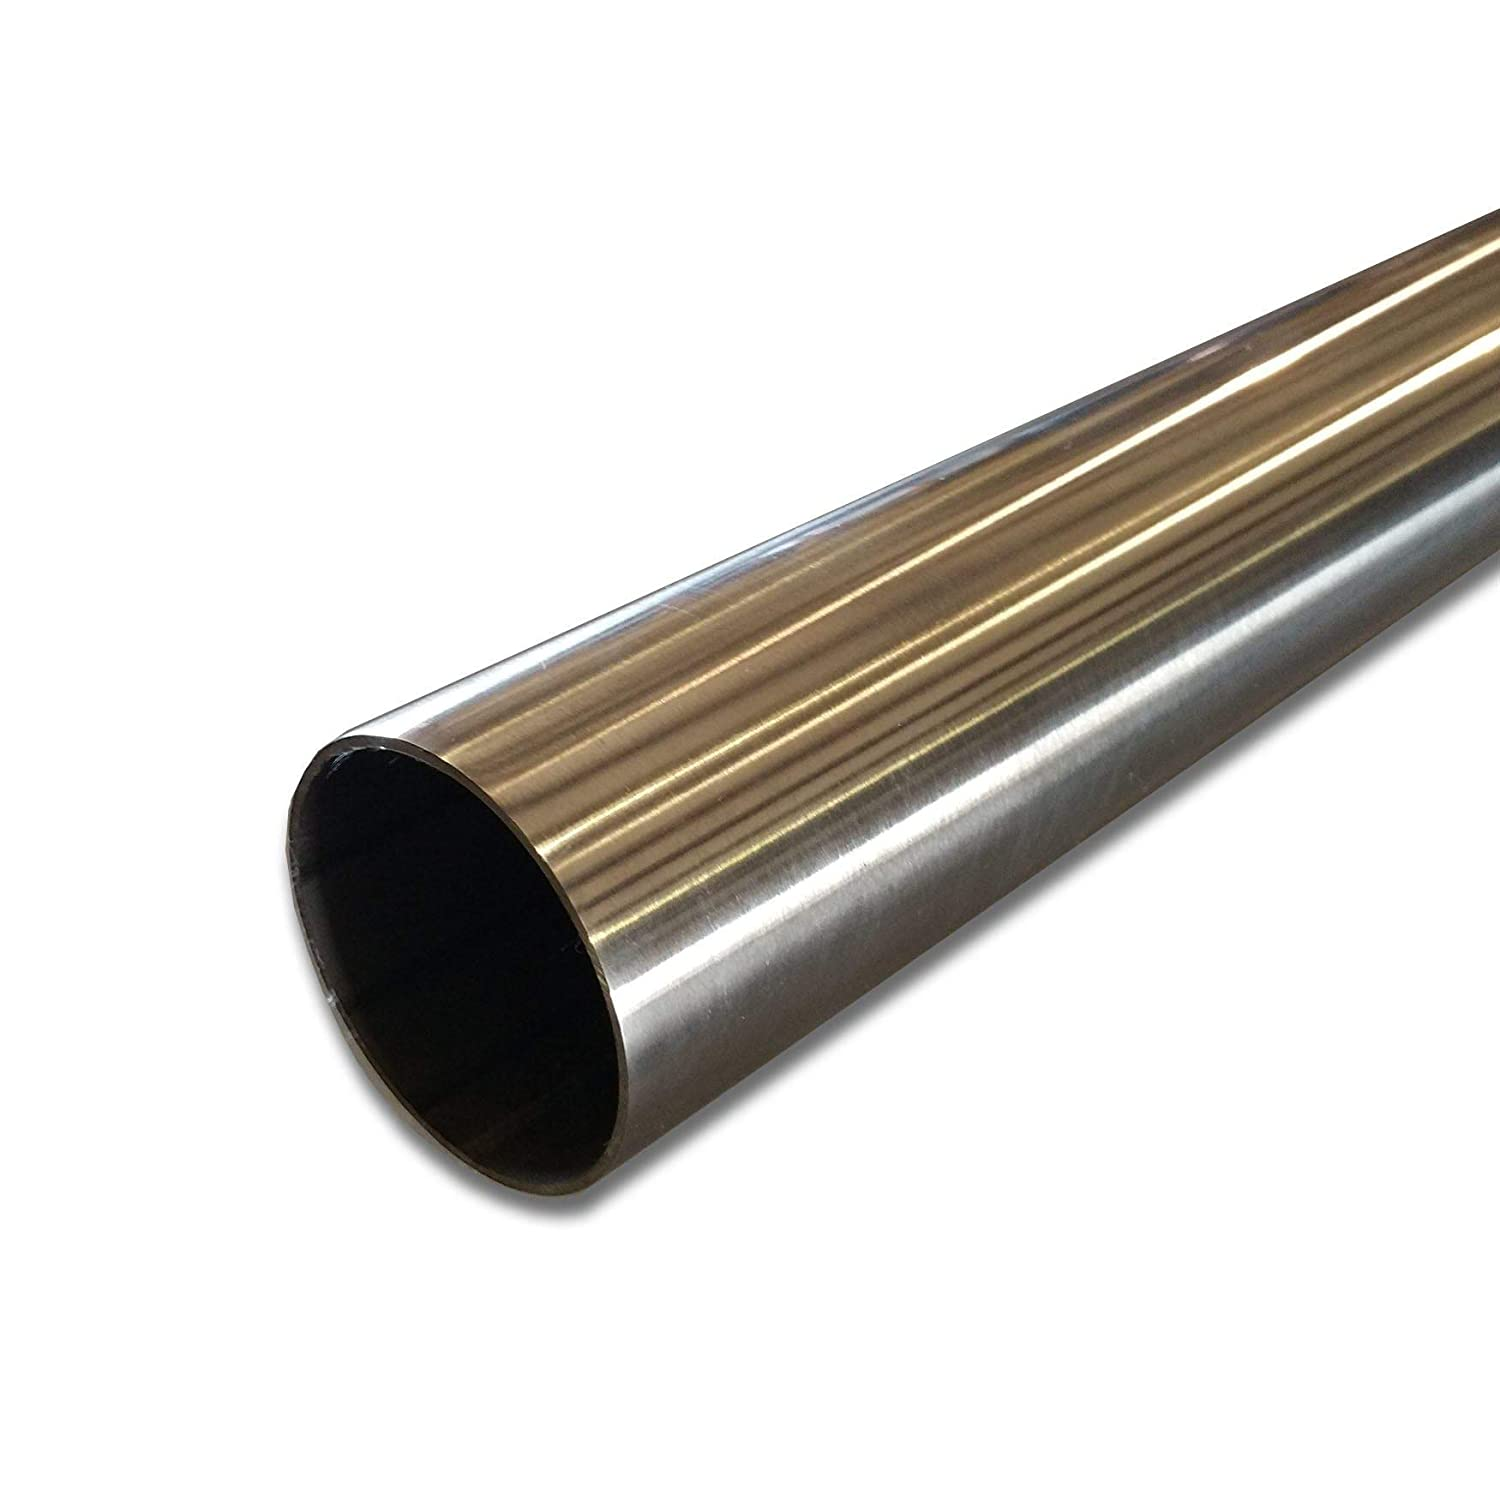 """Polished 304 Stainless Steel Round Tube 2/"""" OD x 0.065/"""" Wall x 72/"""" long"""